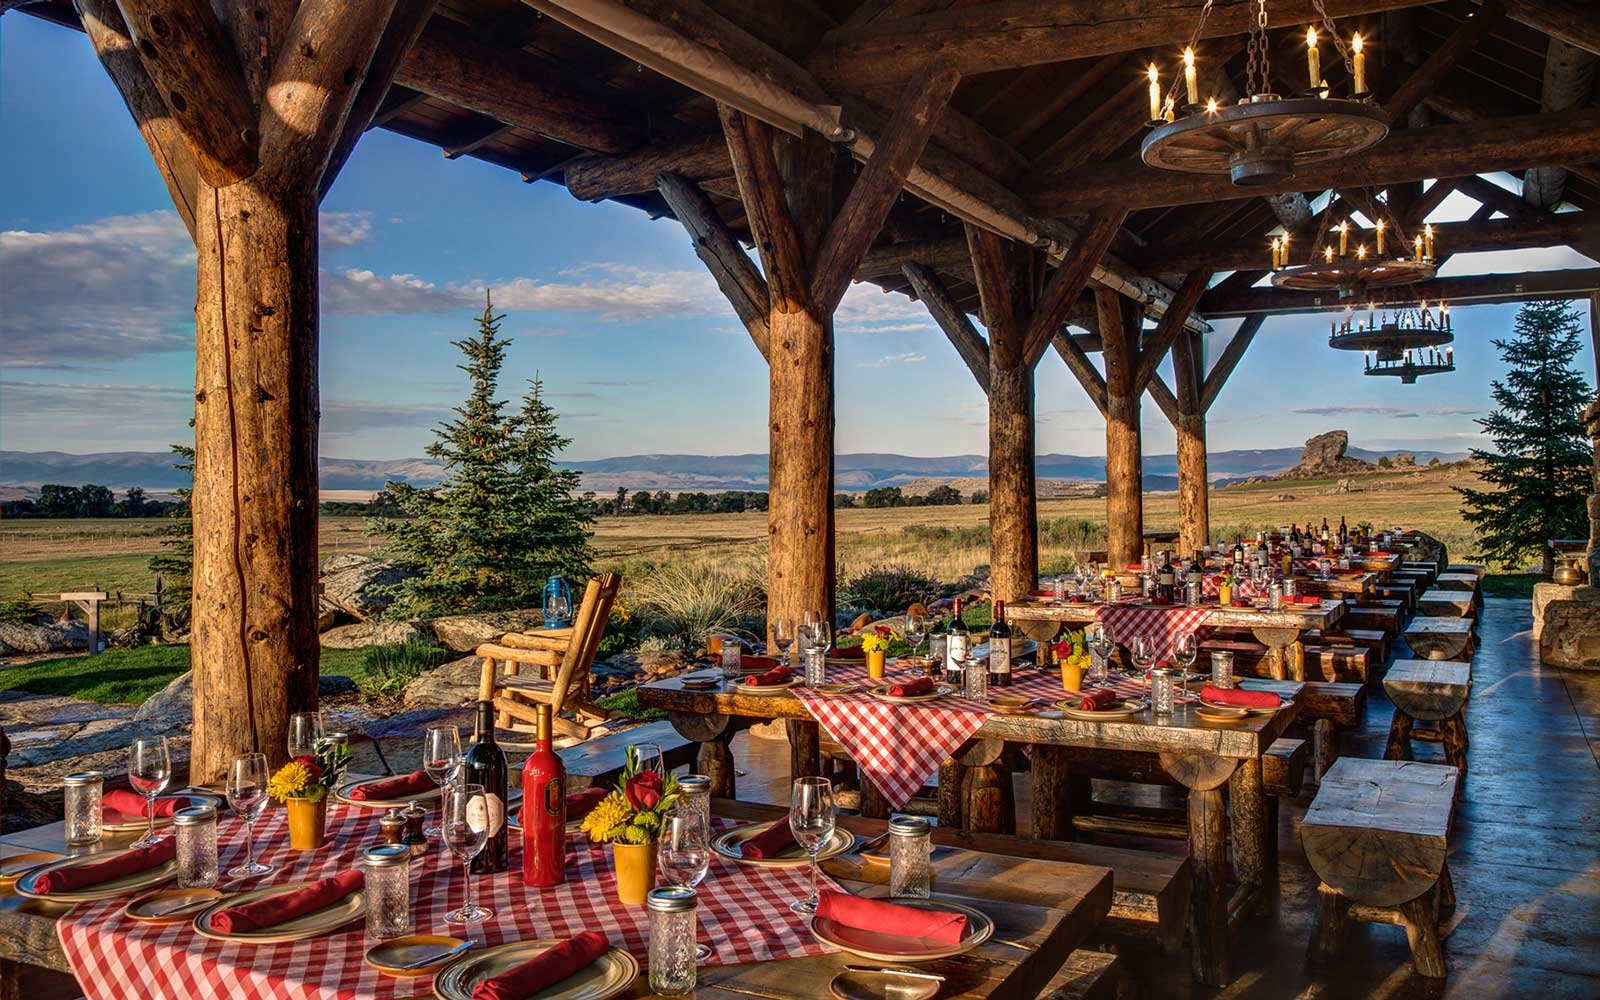 Chuckwagon setup at The Lodge & Spa at Brush Creek Ranch